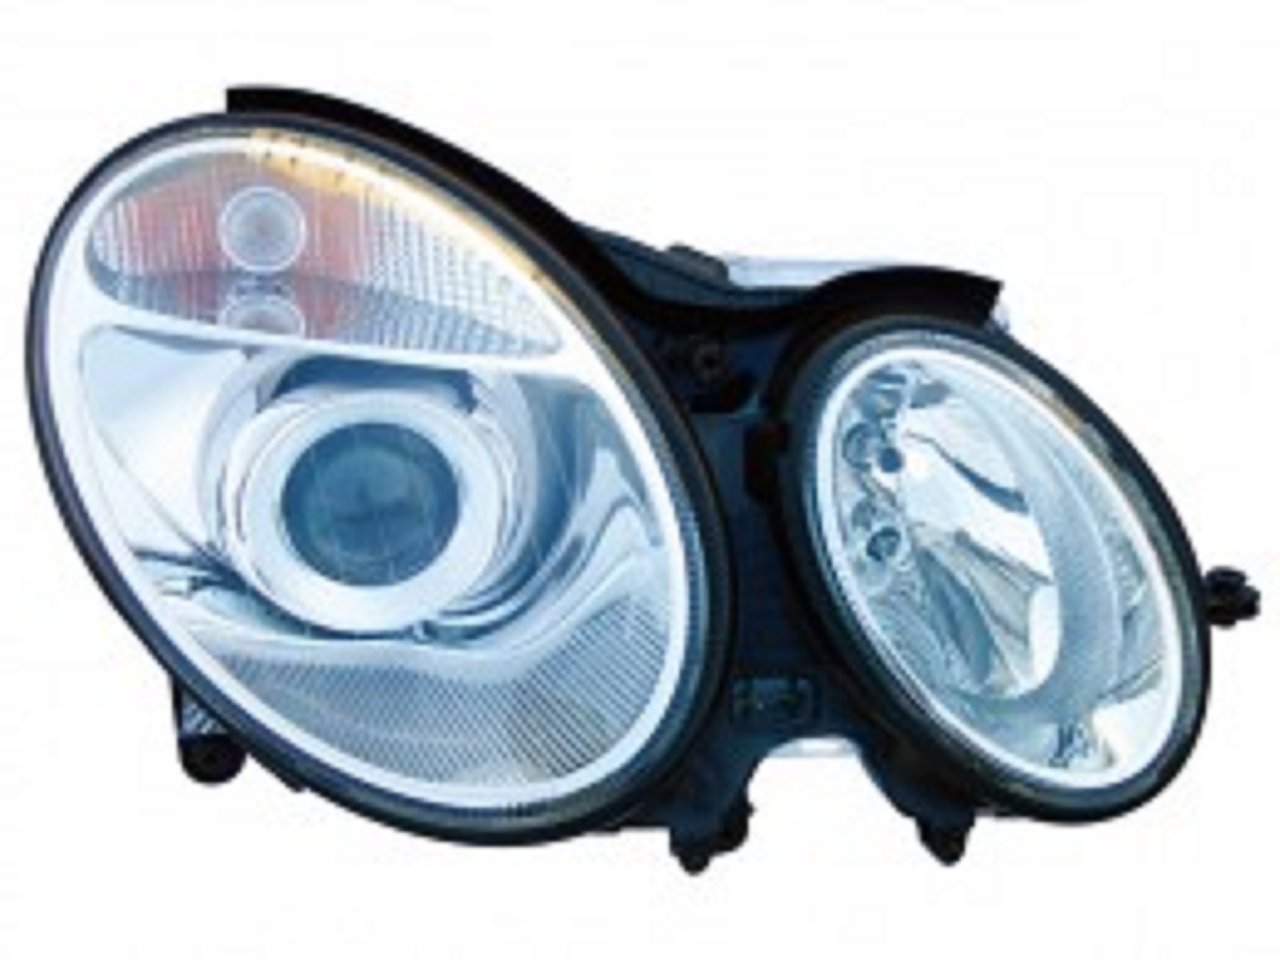 Mercedes Benz E class W211 sedan & wagon 2003 2004 2005 2006 right passenger headlight